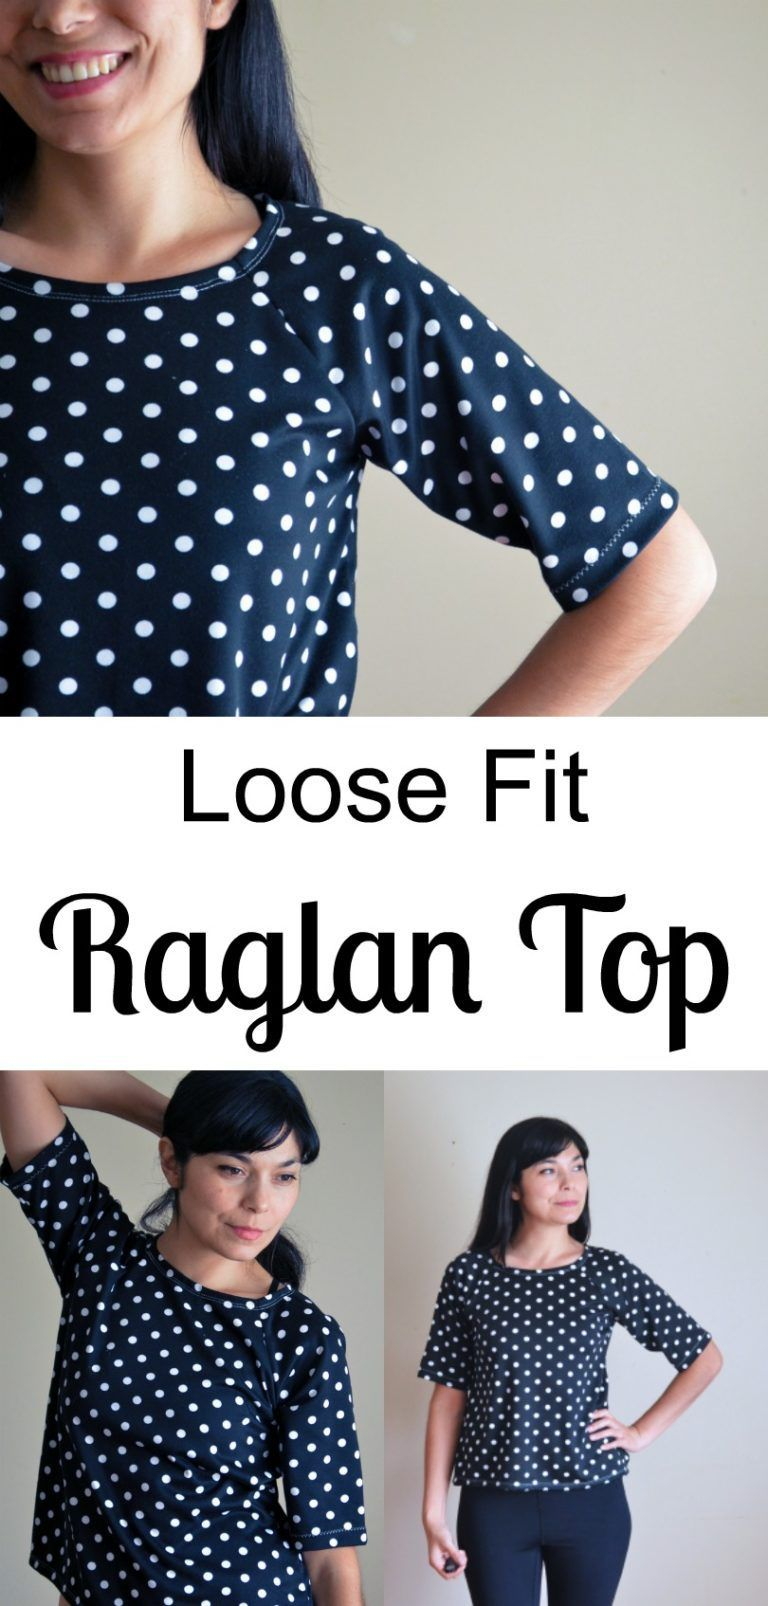 Simple loose fit raglan top sewing tutorial on the cutting floor simple loose fit raglan top sewing tutorial on the cutting floor printable pdf sewing patterns and tutorials for women jeuxipadfo Choice Image